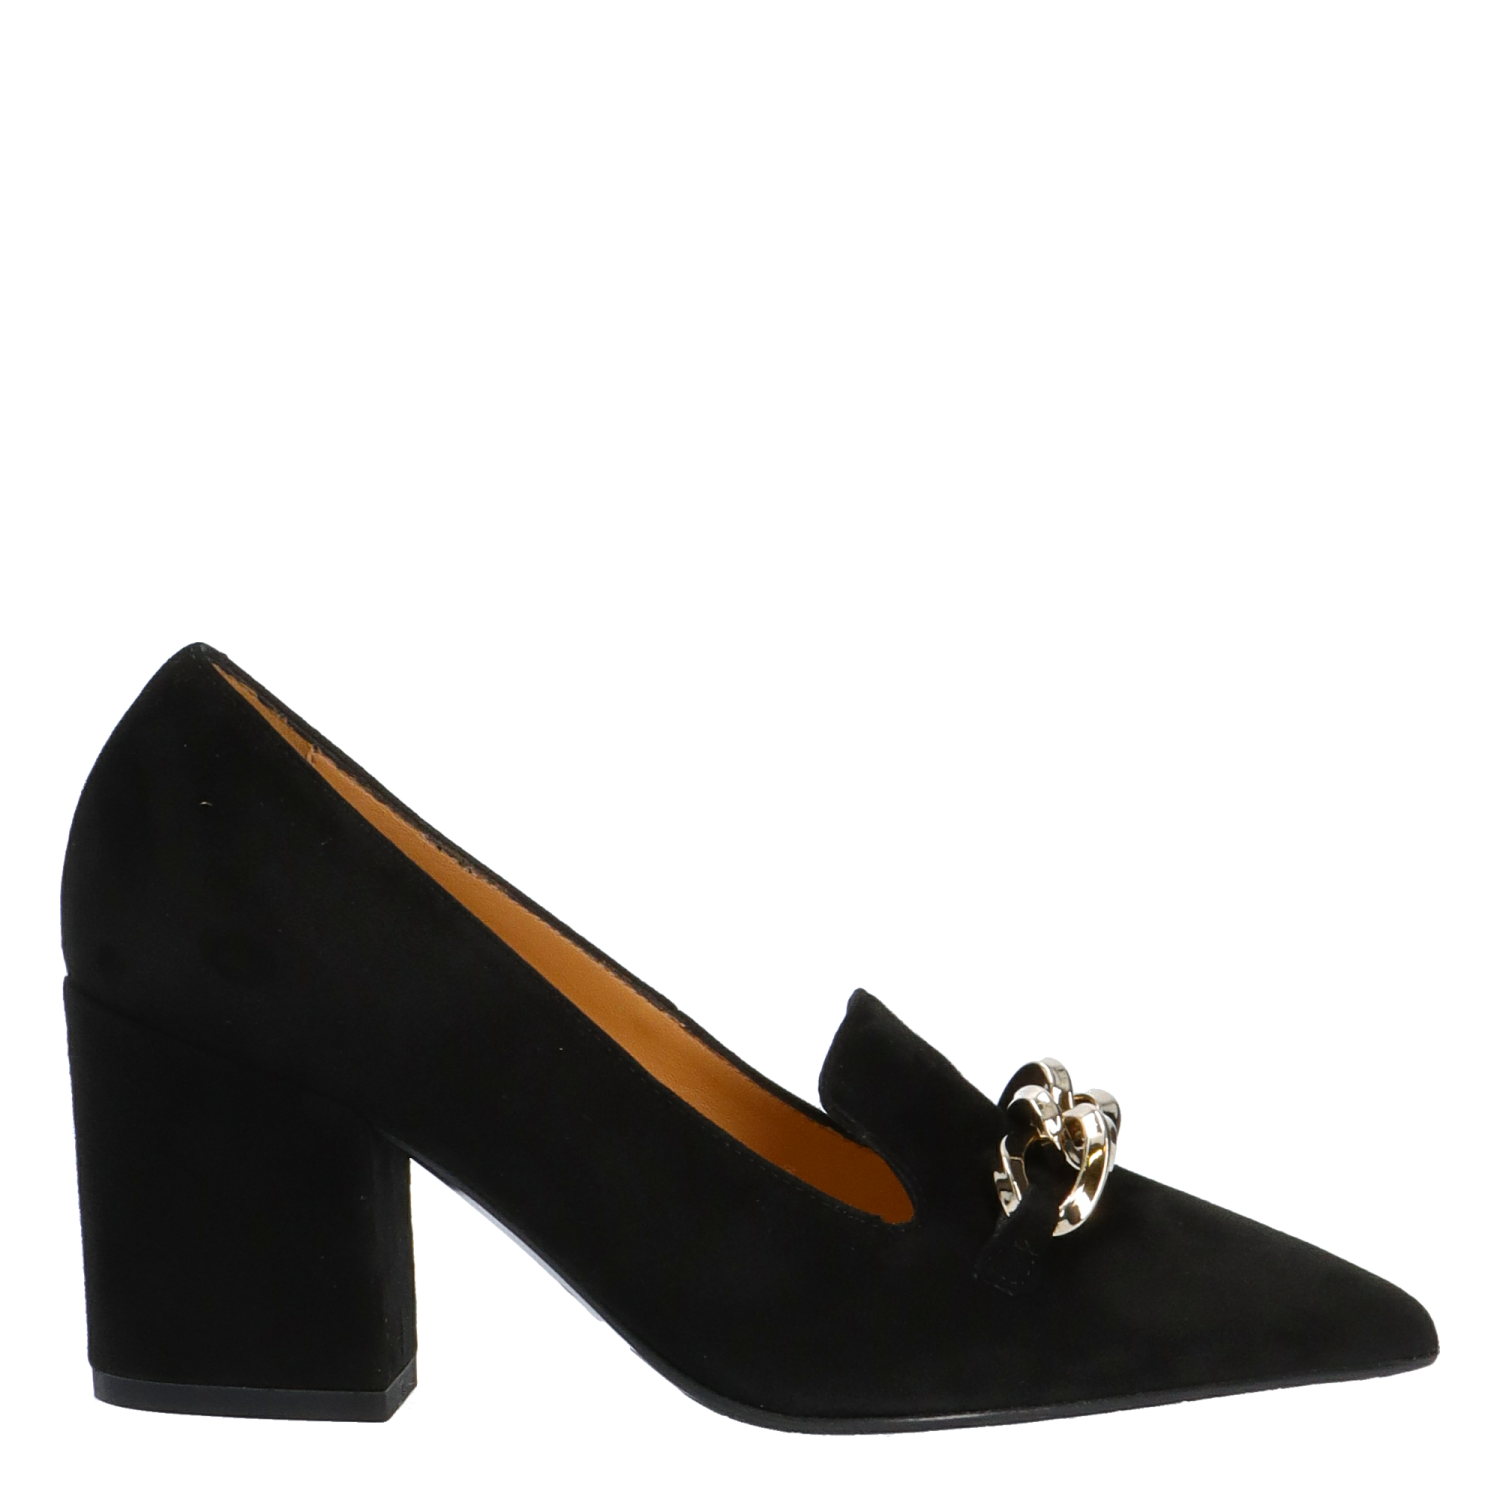 Suede Anaelle moccasins